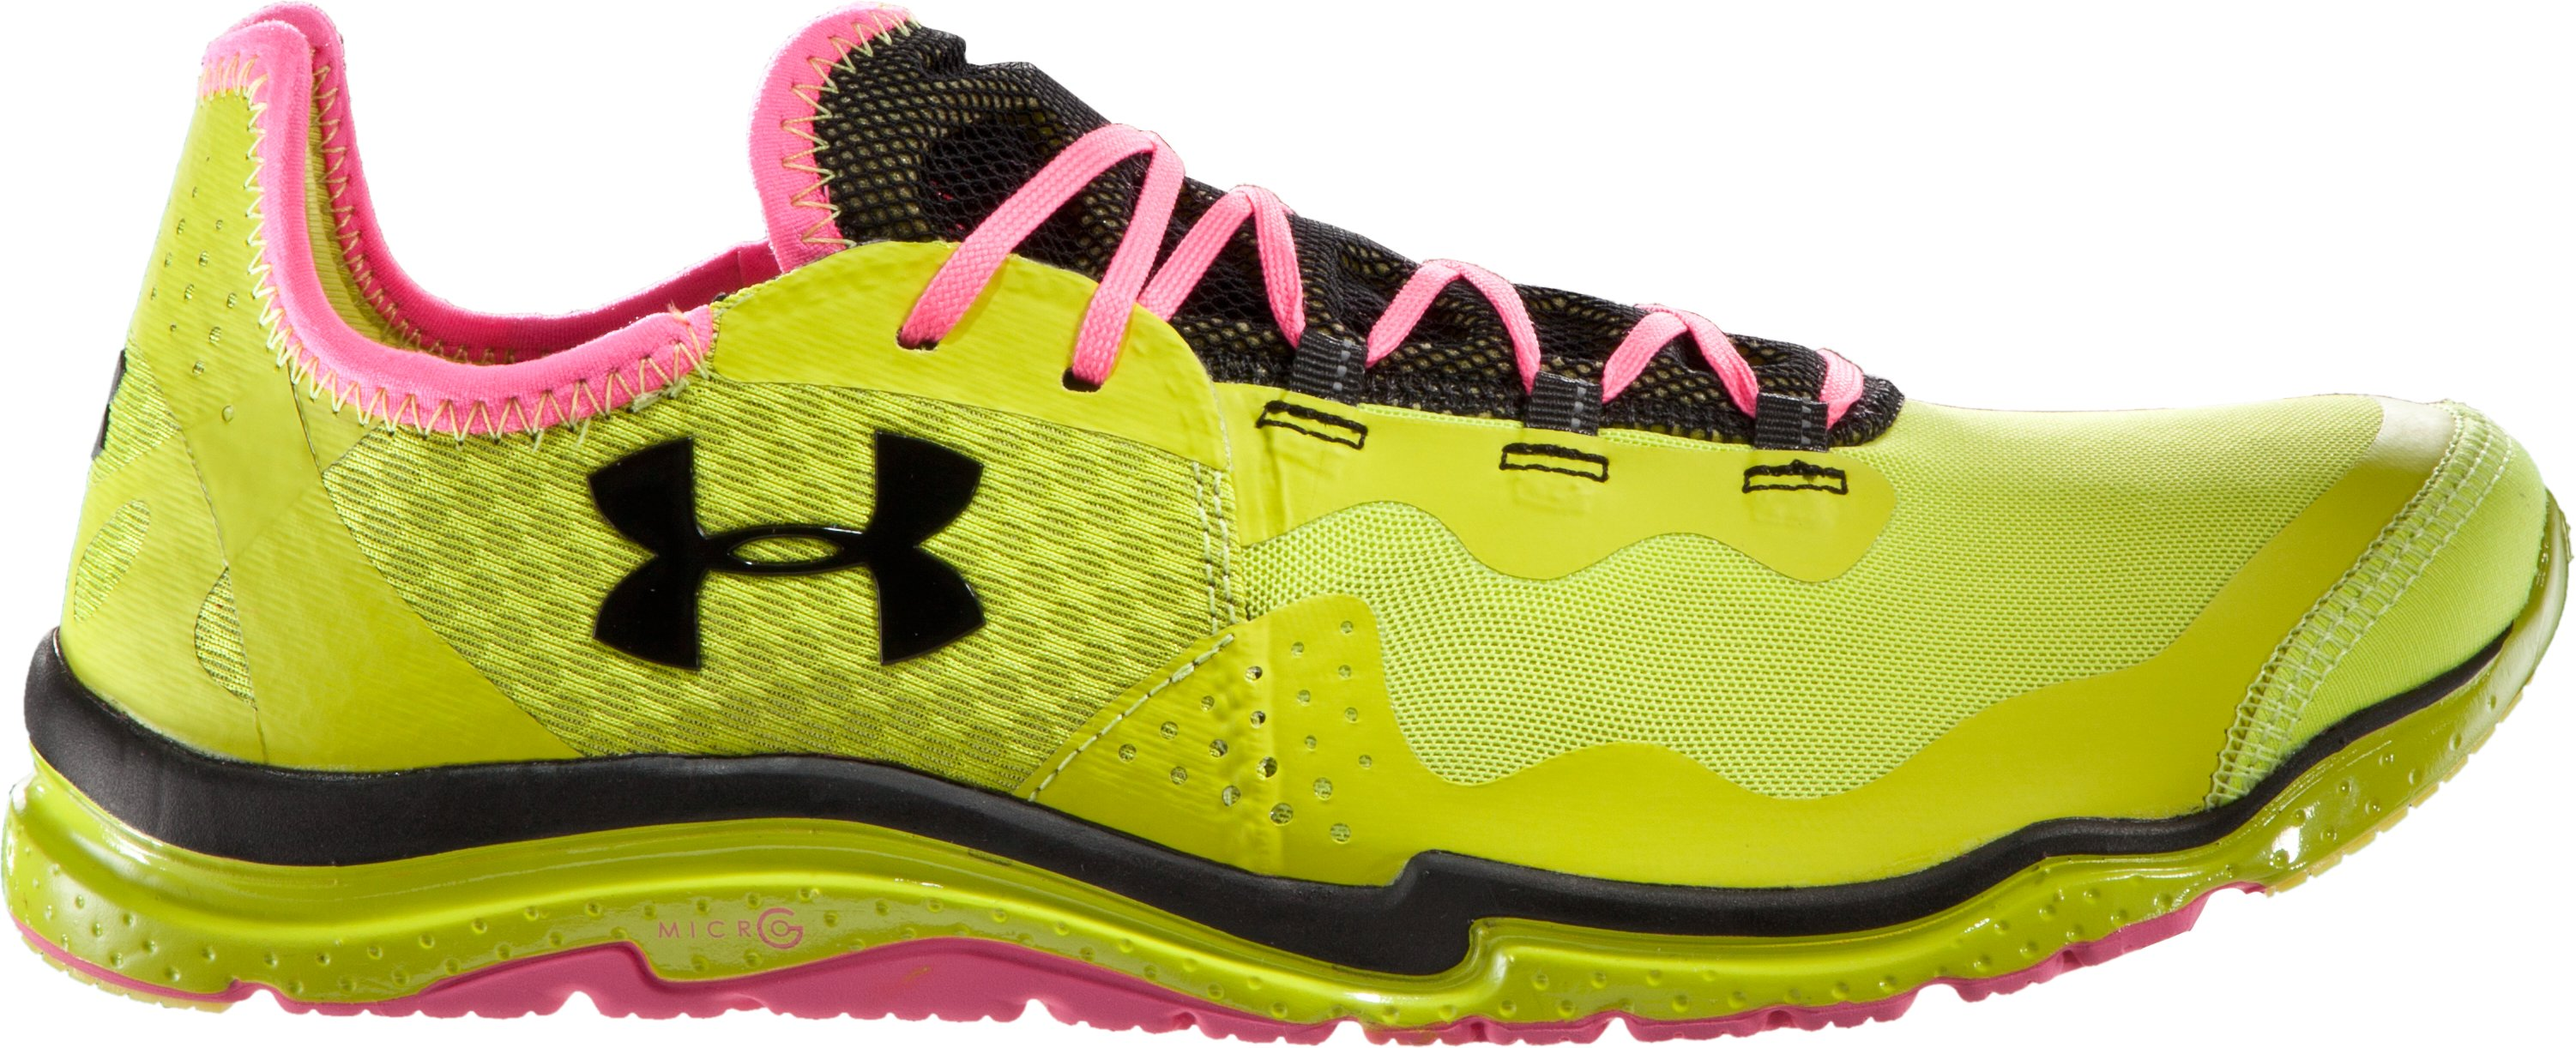 Men's UA Charge RC 2 Racer Running Shoes, Bitter